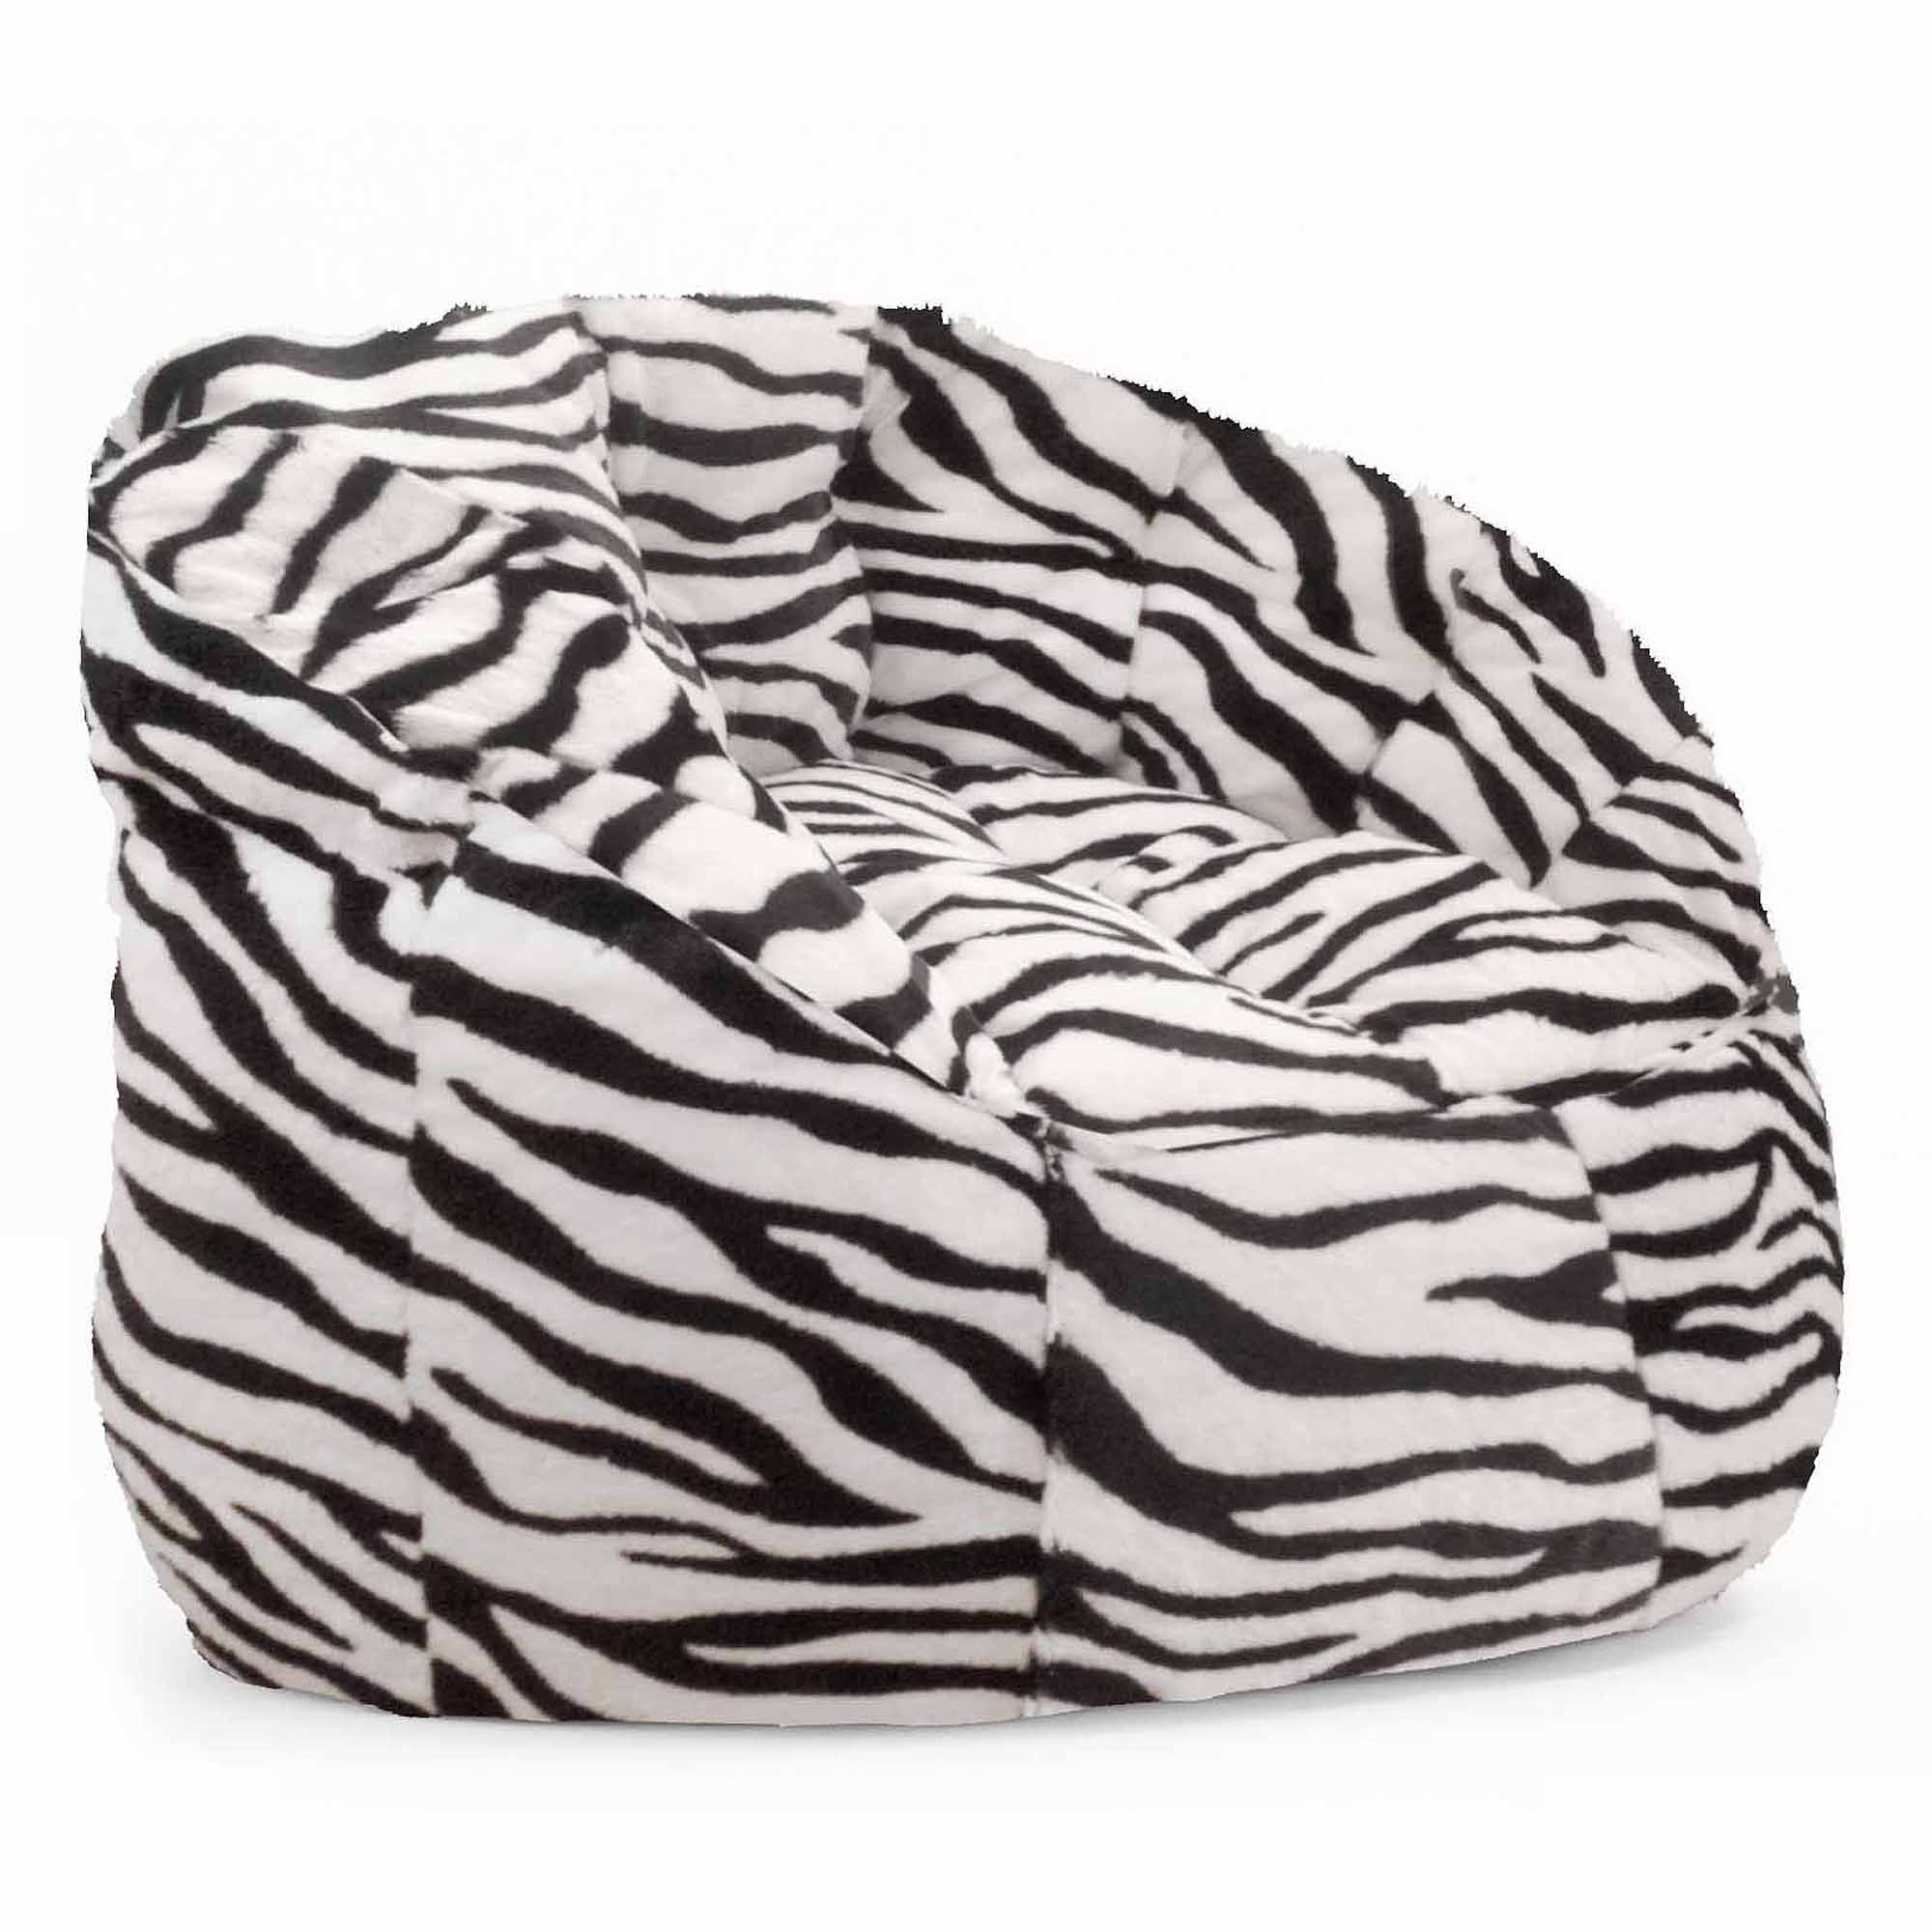 Cocoon Faux Fur Bean Bag Chair, Multiple Colors